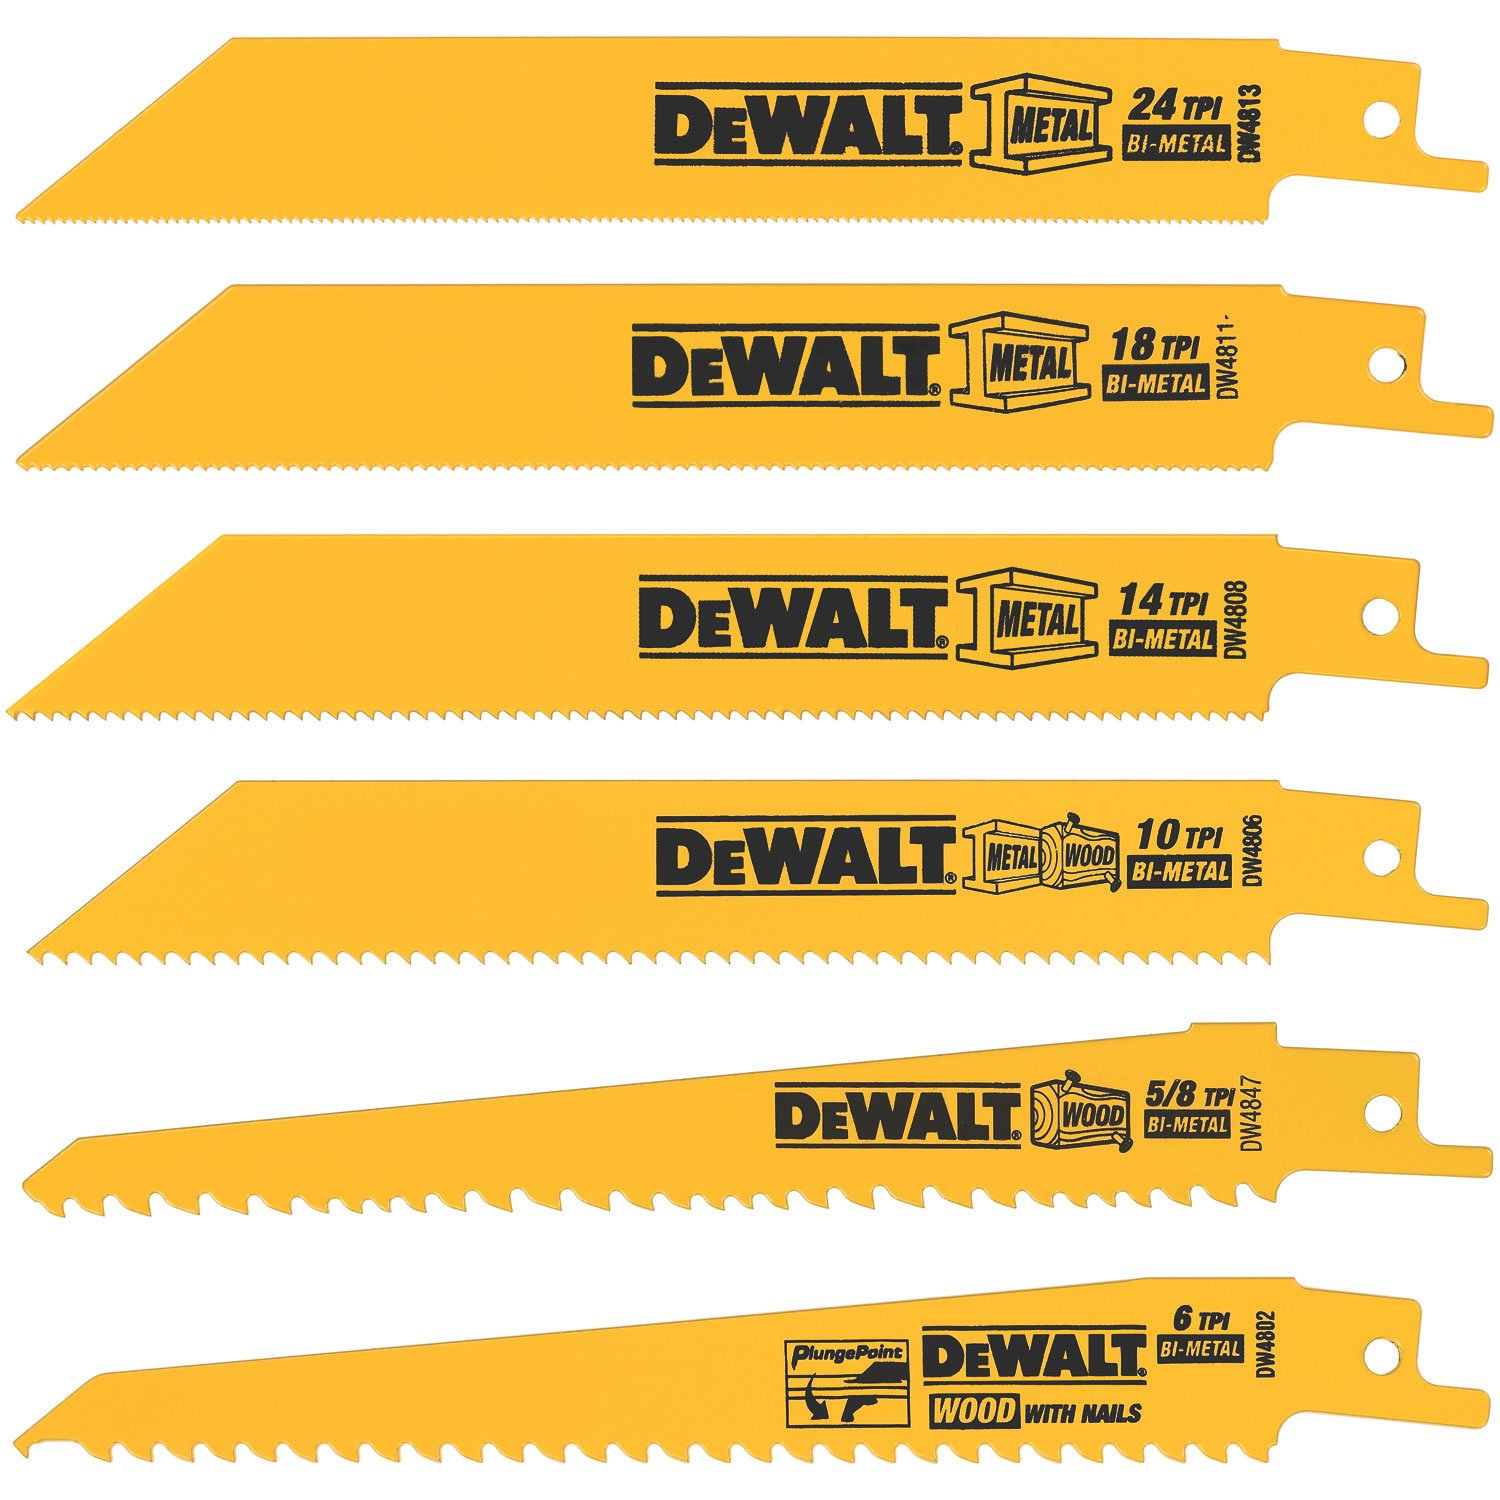 DEWALT DW4856 Metal/Woodcutting Reciprocating Saw Blade Set, 6-Piece